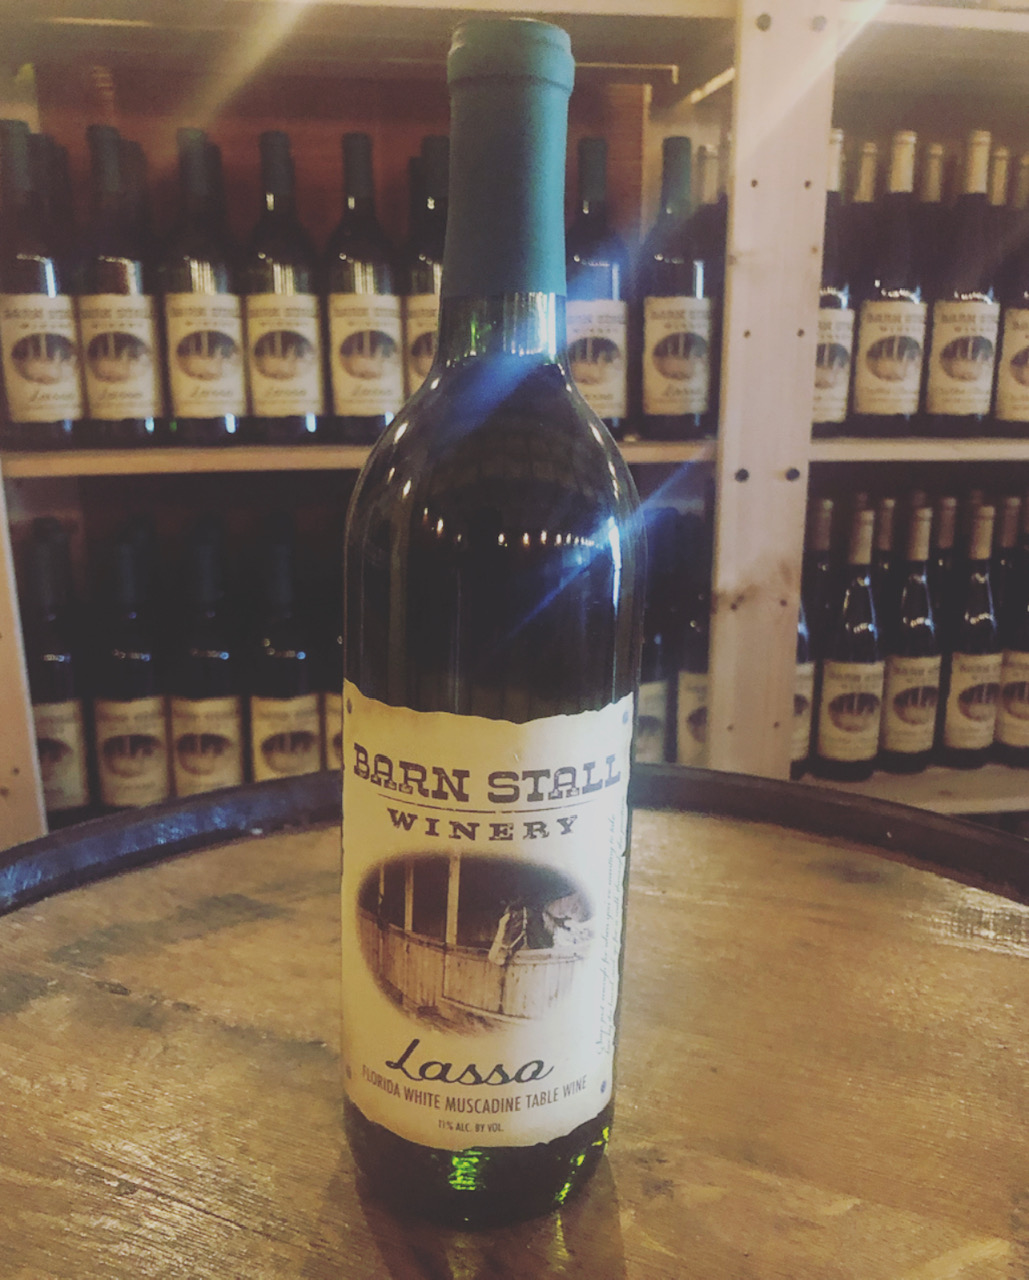 Lasso - Florida White Muscadine Table Wine. Says just enough for when you're wanting to take her by the hand and go for a walk throught the pasture. 11% alc